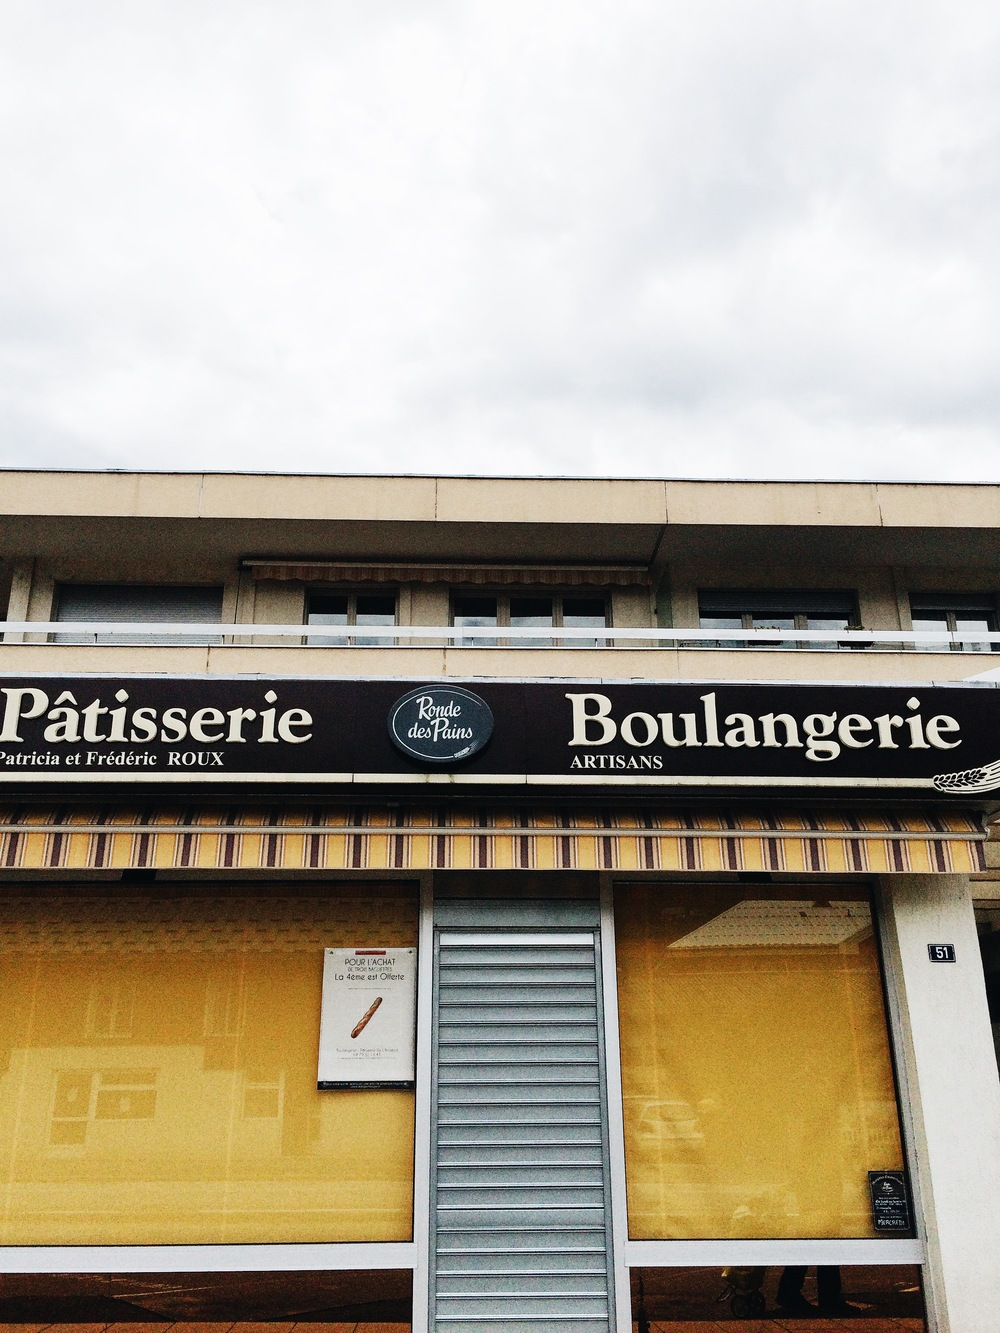 Our little boulangerie (bread shop) down the street from our apartment. They were closed for the summer and didn't open up until September, and then of course they close on Wednesdays and Sundays, so getting a photo of when they are actually open proved to be difficult.